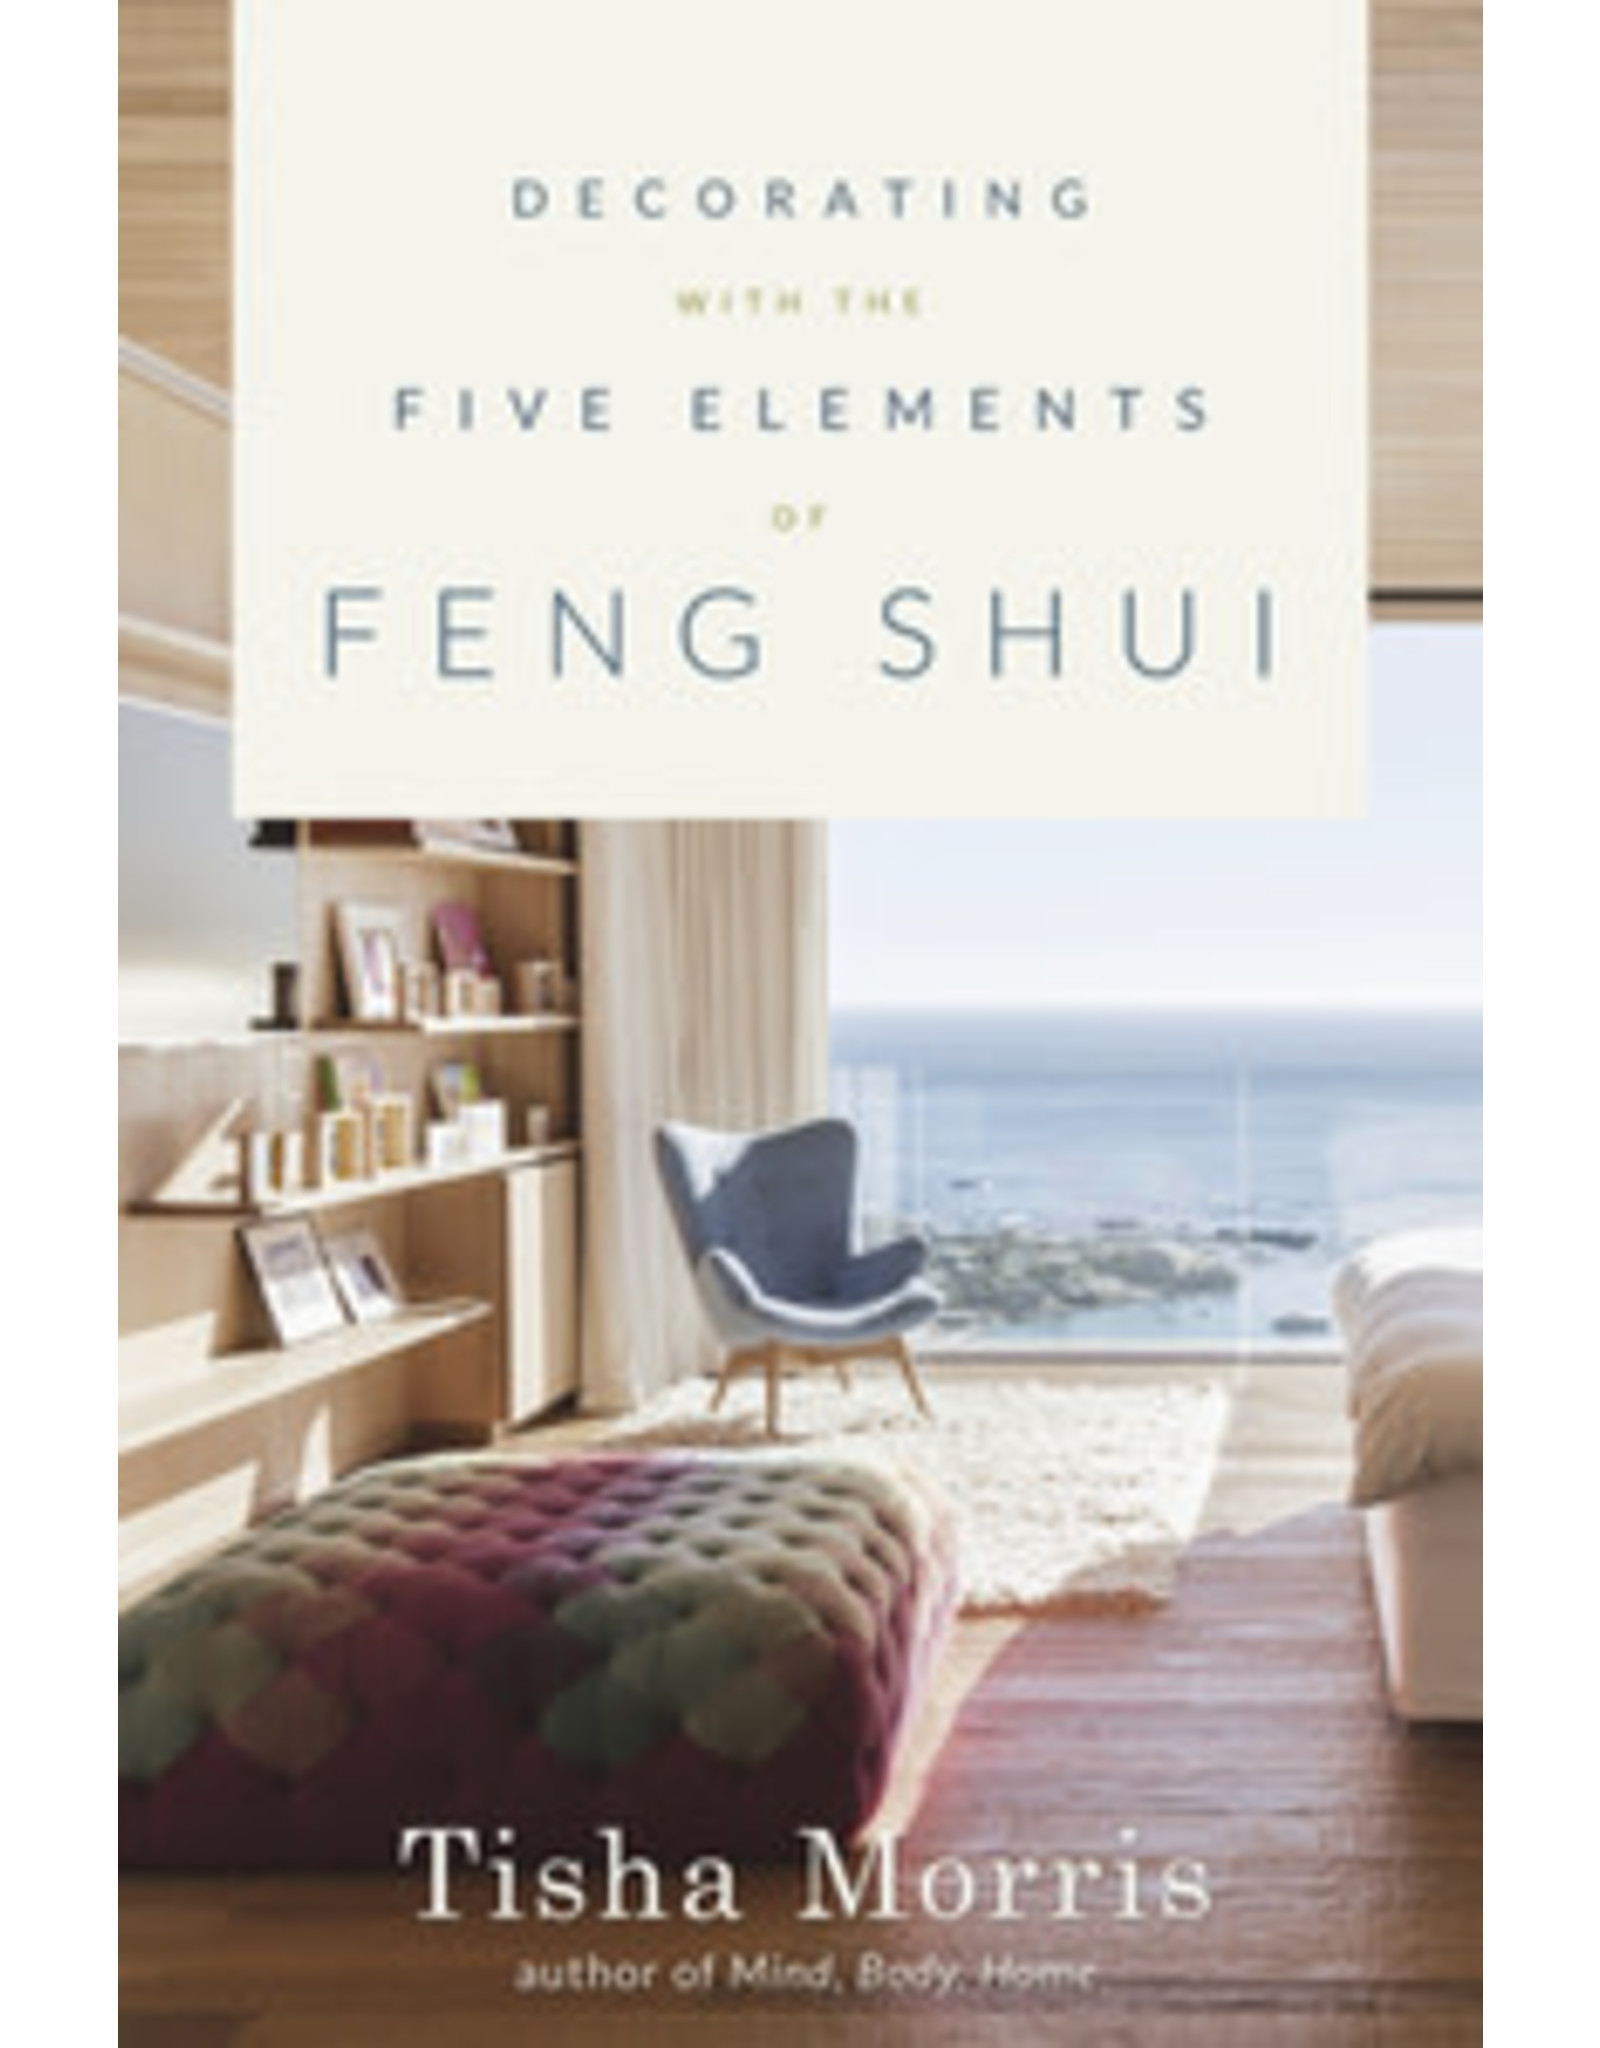 Decorating with the 5 Elements of Feng Shui